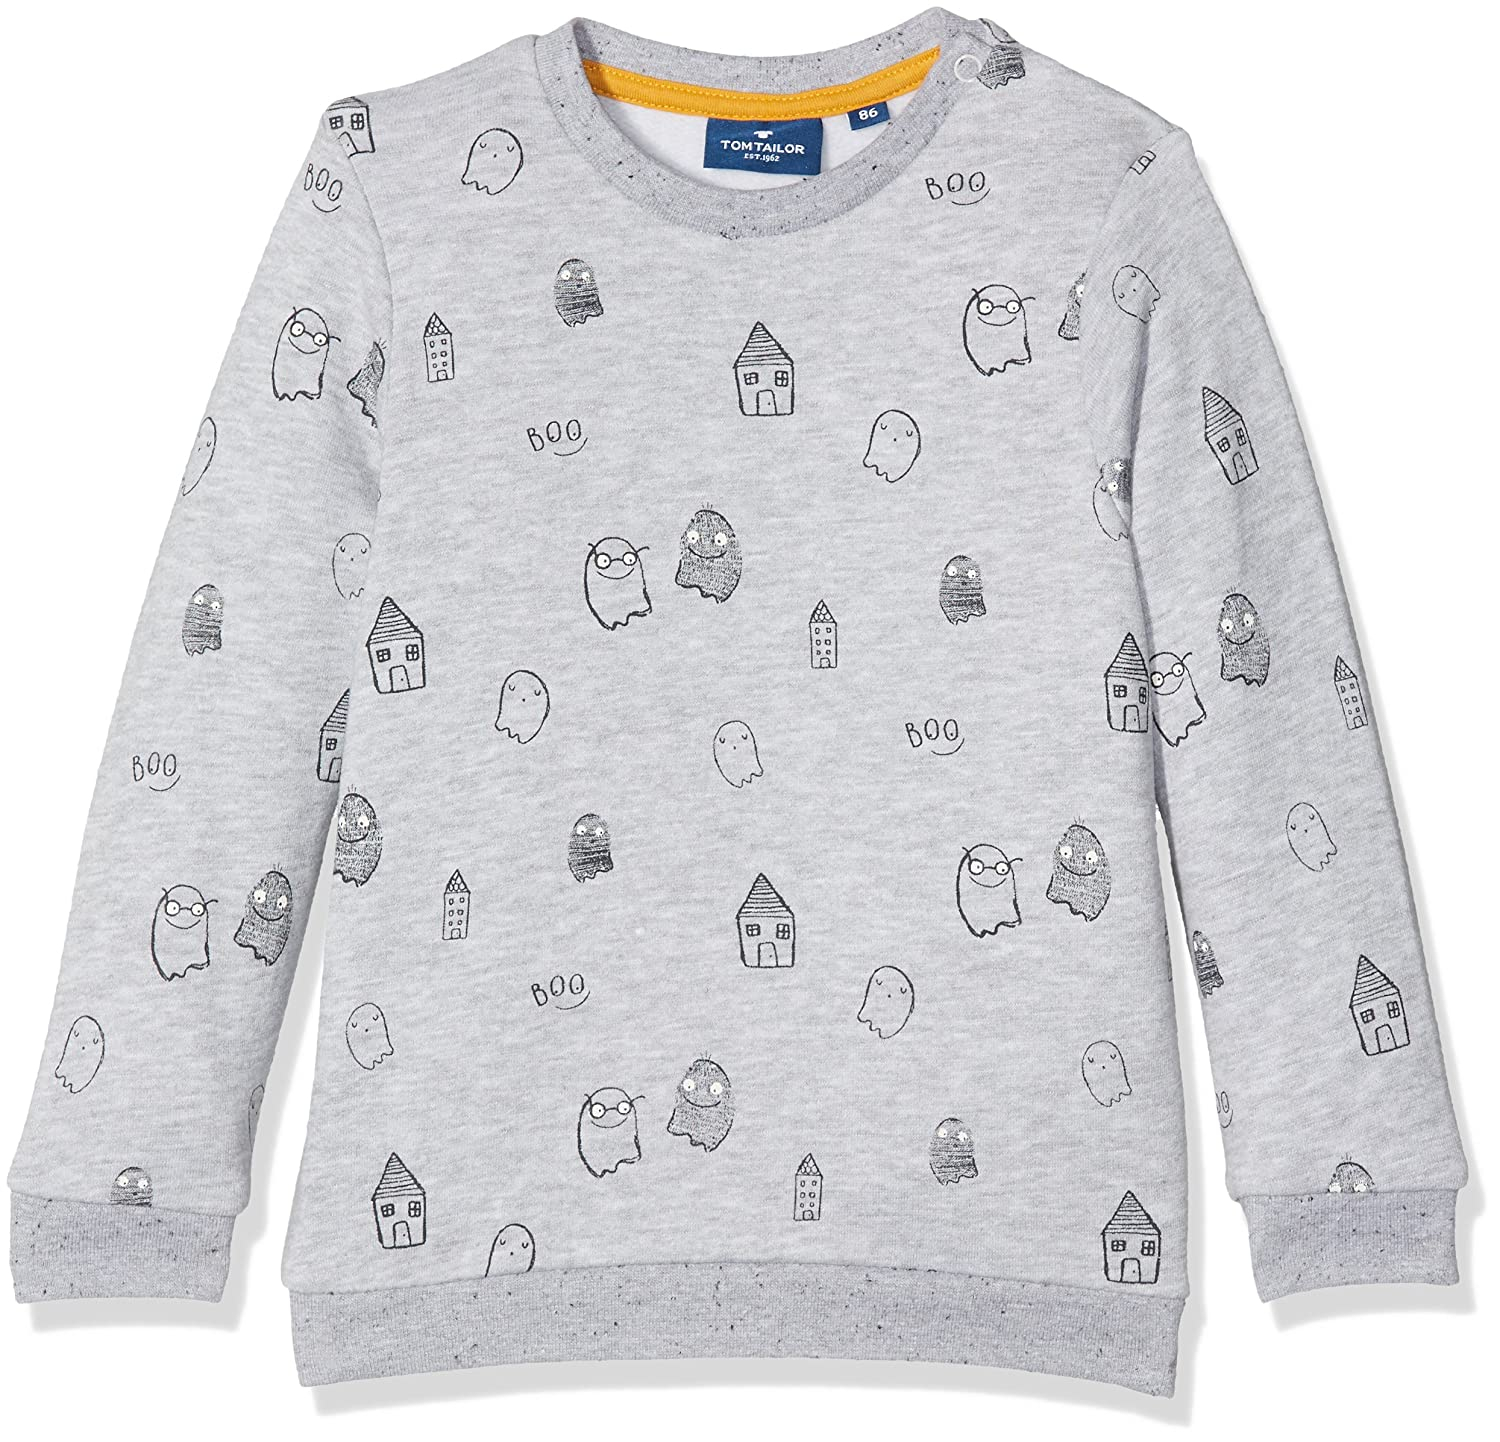 TOM TAILOR Kids Baby Boys' Ghost Pattern Sweatshirt 25313840022